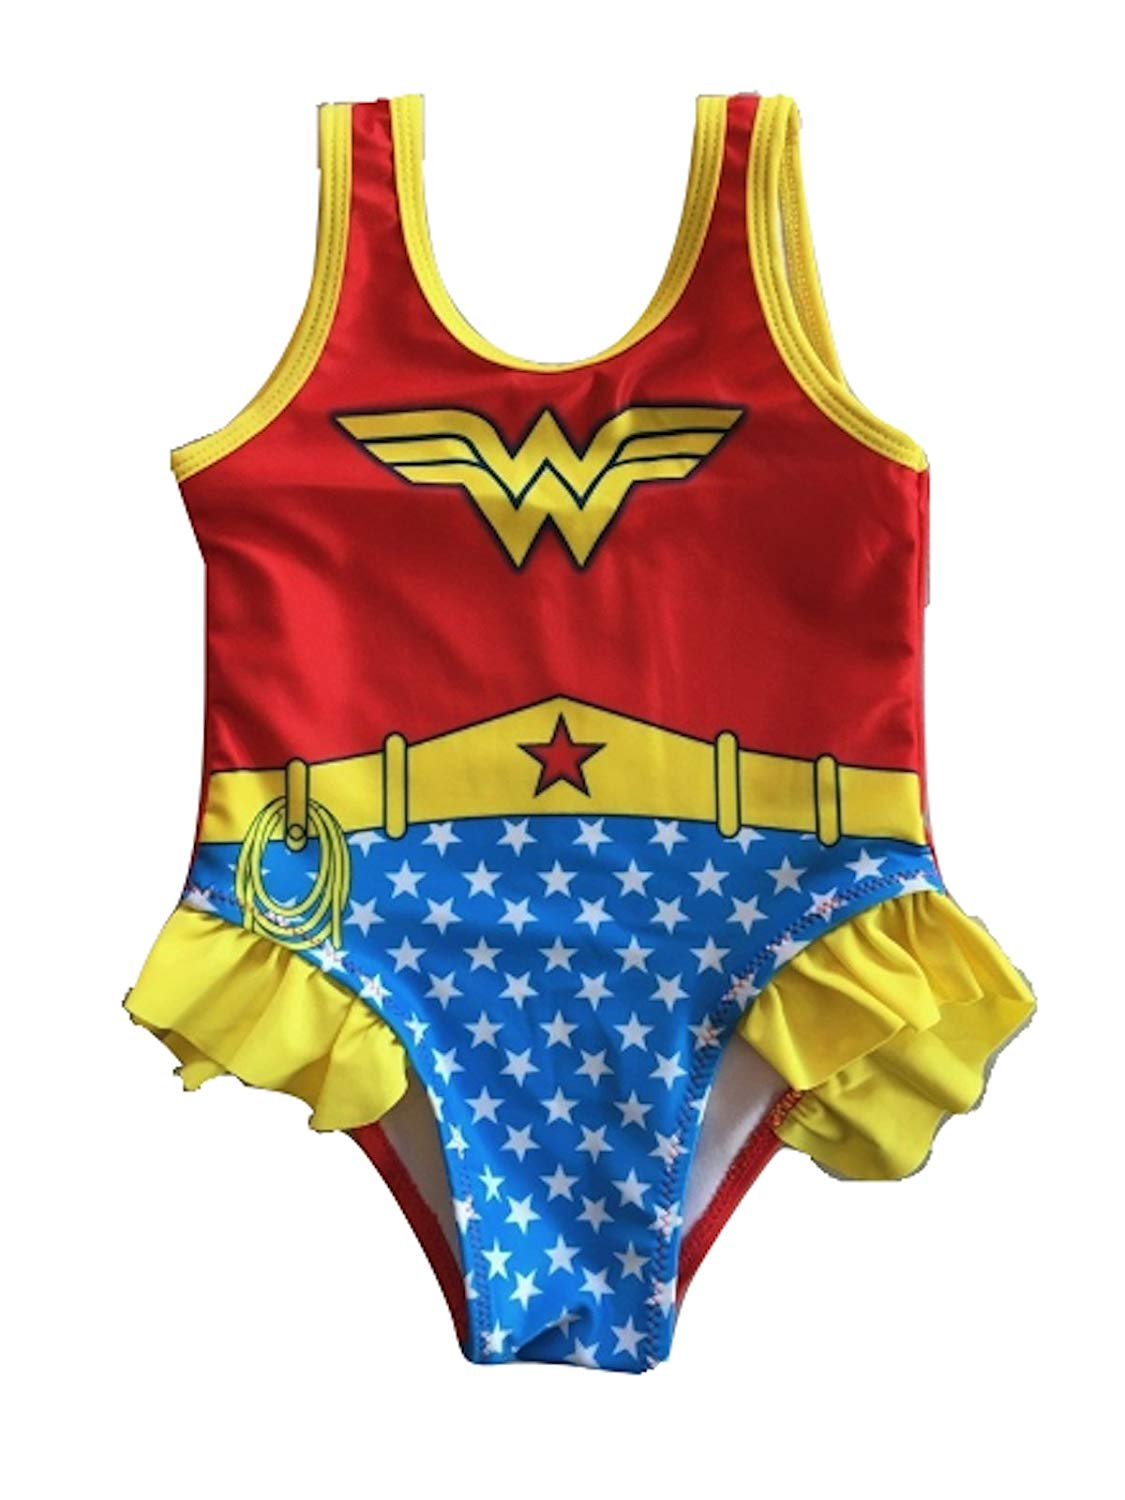 f53d940a8d76b Get Quotations · L C Boutique Little Girls Ruffle Wonder Woman One Piece  Swimsuit in Sizes 2T to 5T